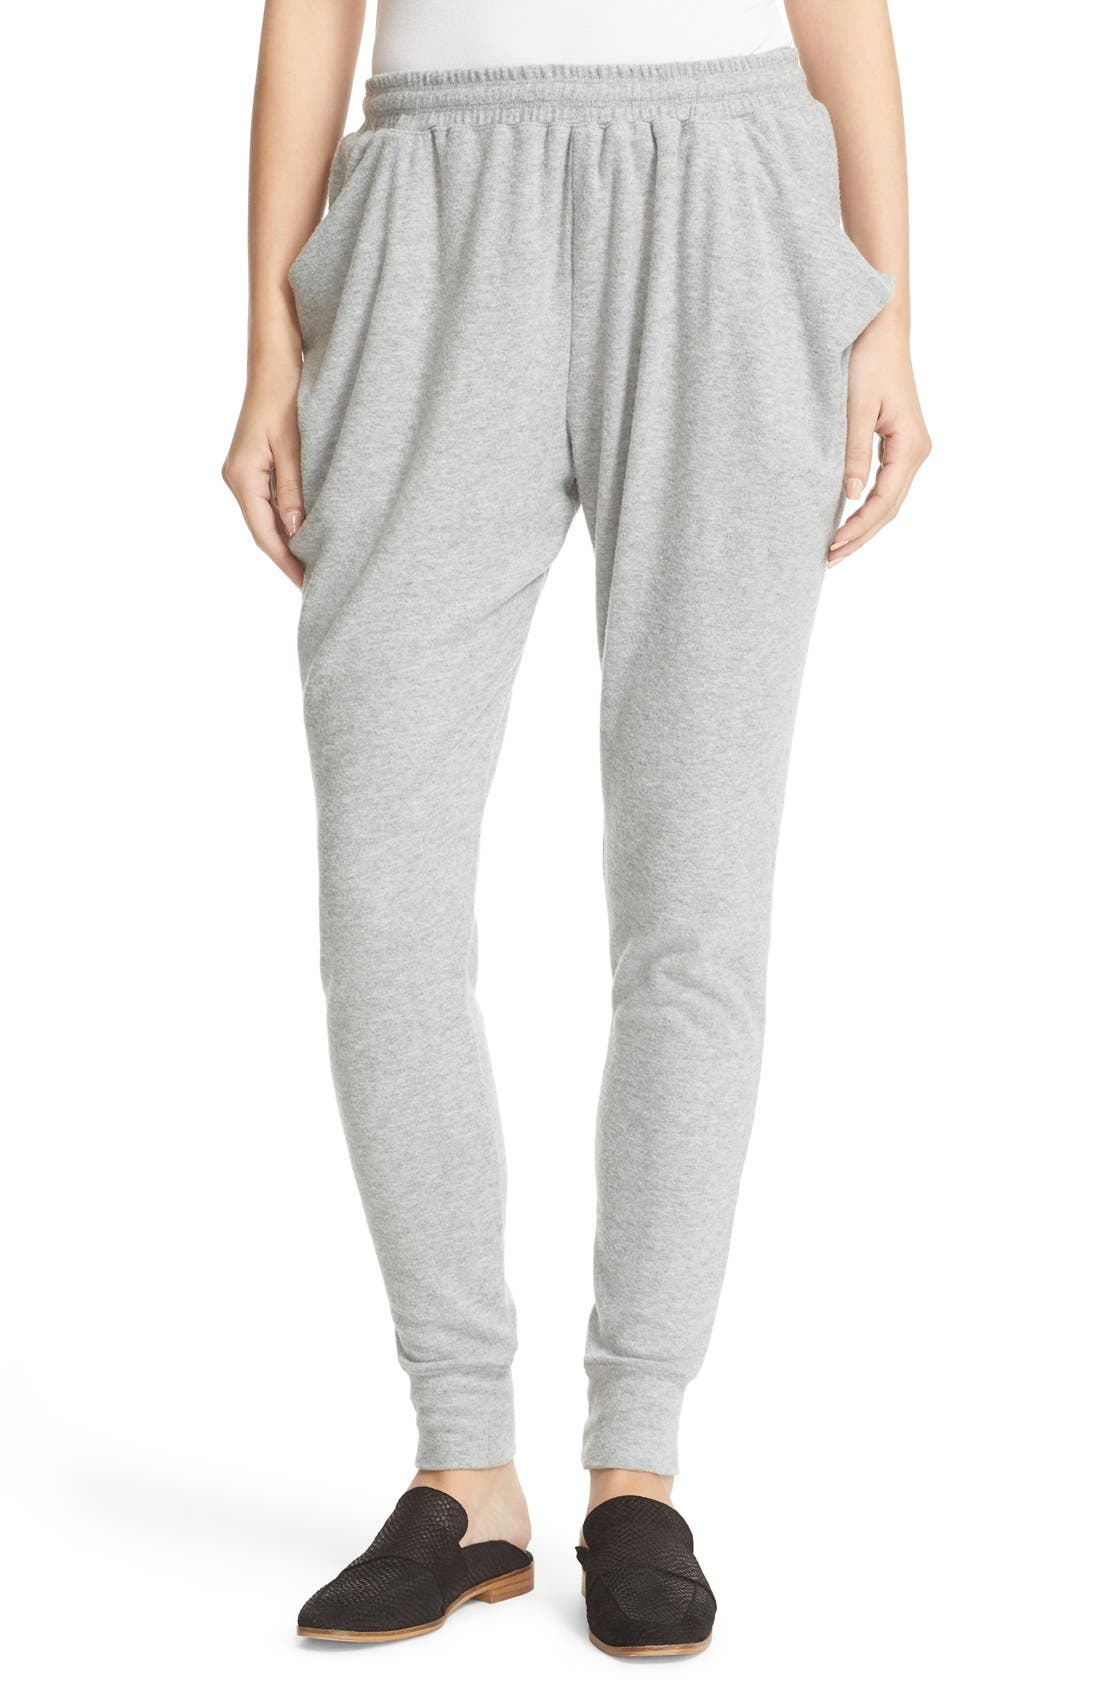 Alternate Image 1 Selected - Free People Everyone Loves This Jogger Pants